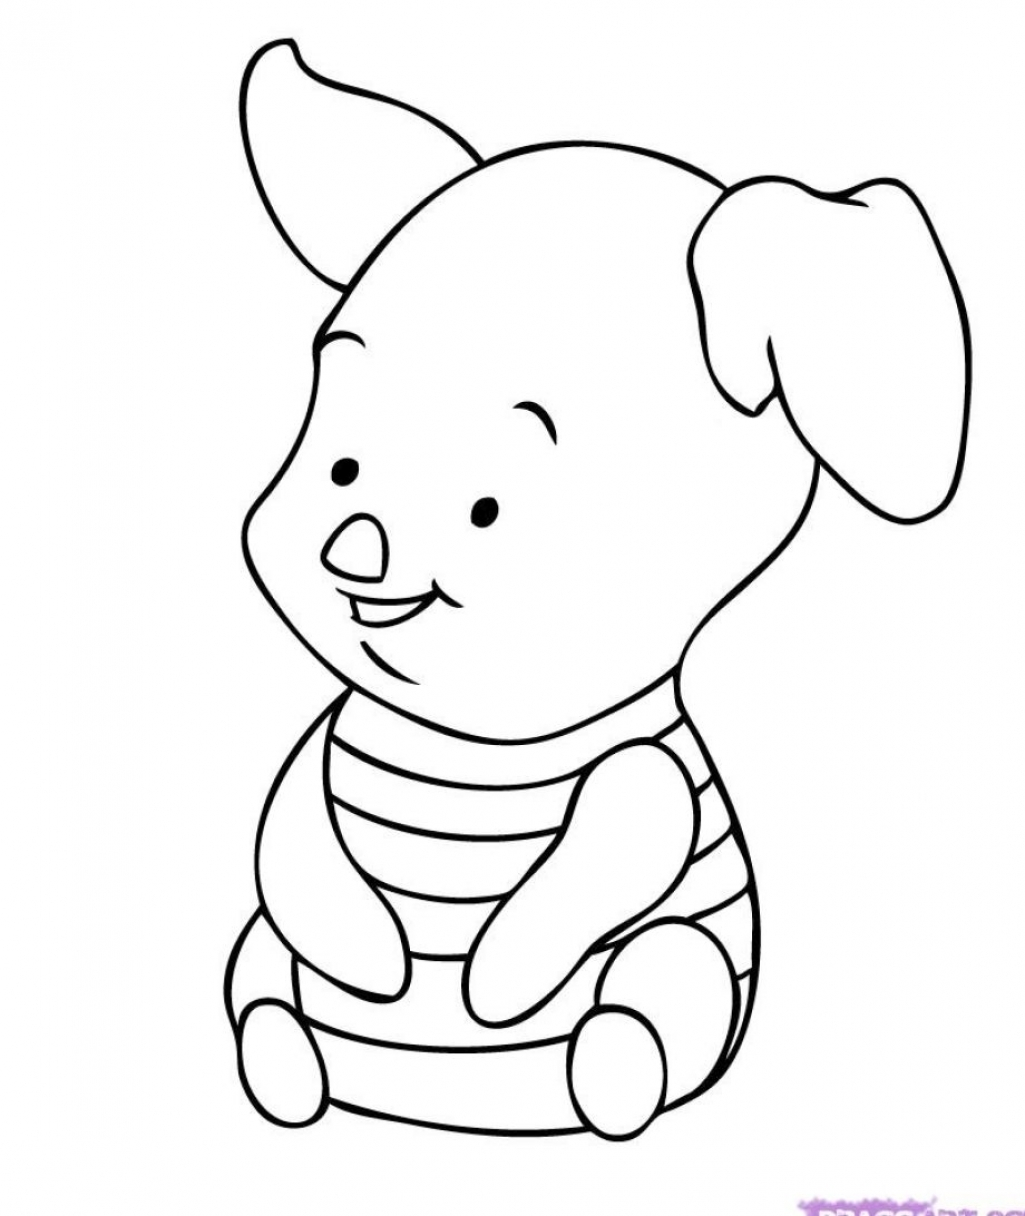 Download Coloring Pages  Cartoon Characters Coloring Pages